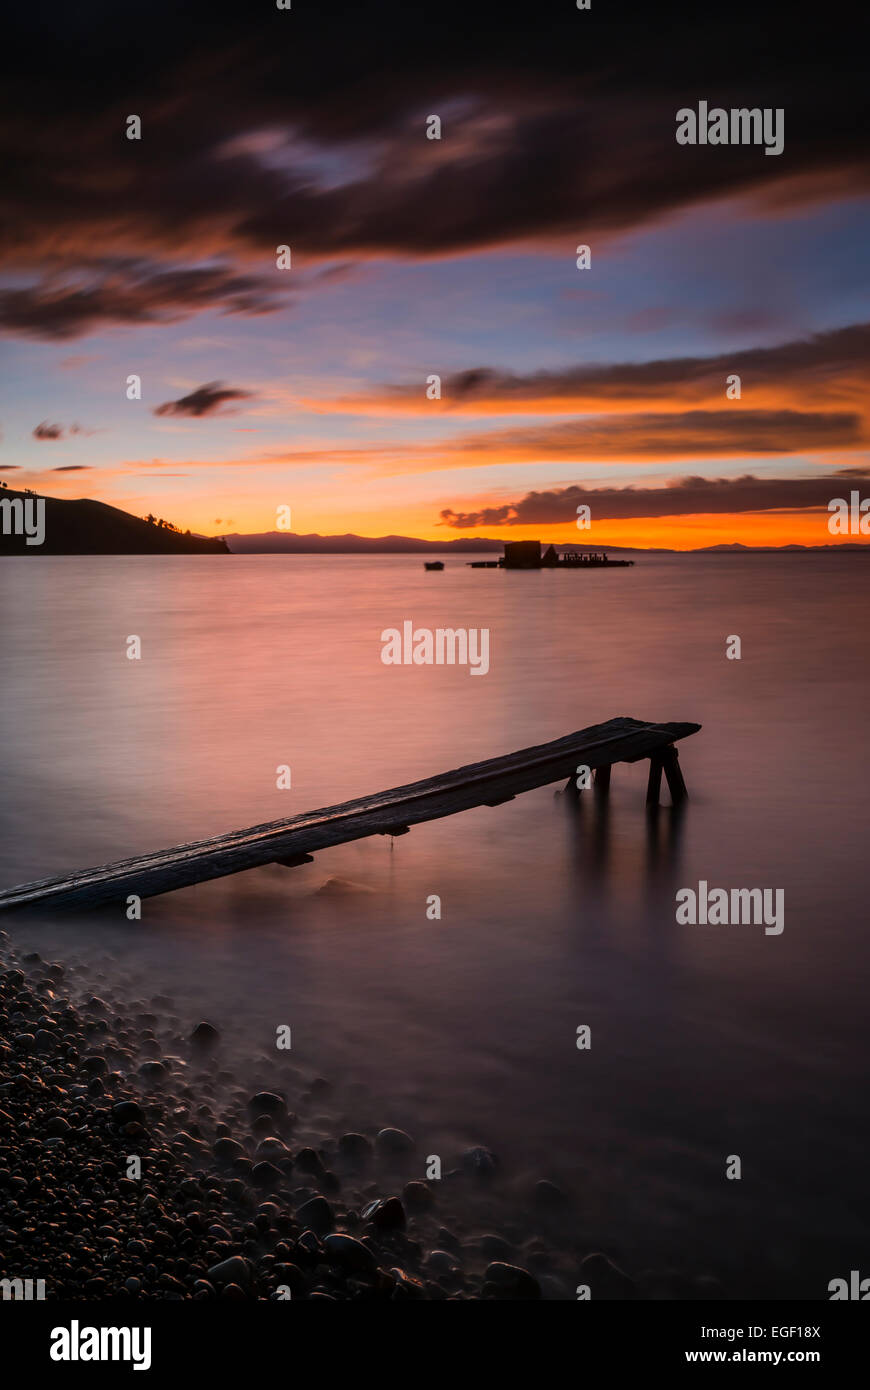 Jetty on Cobacabana Beach at dusk, Copacabana, Lake Titicaca, Bolivia - Stock Image